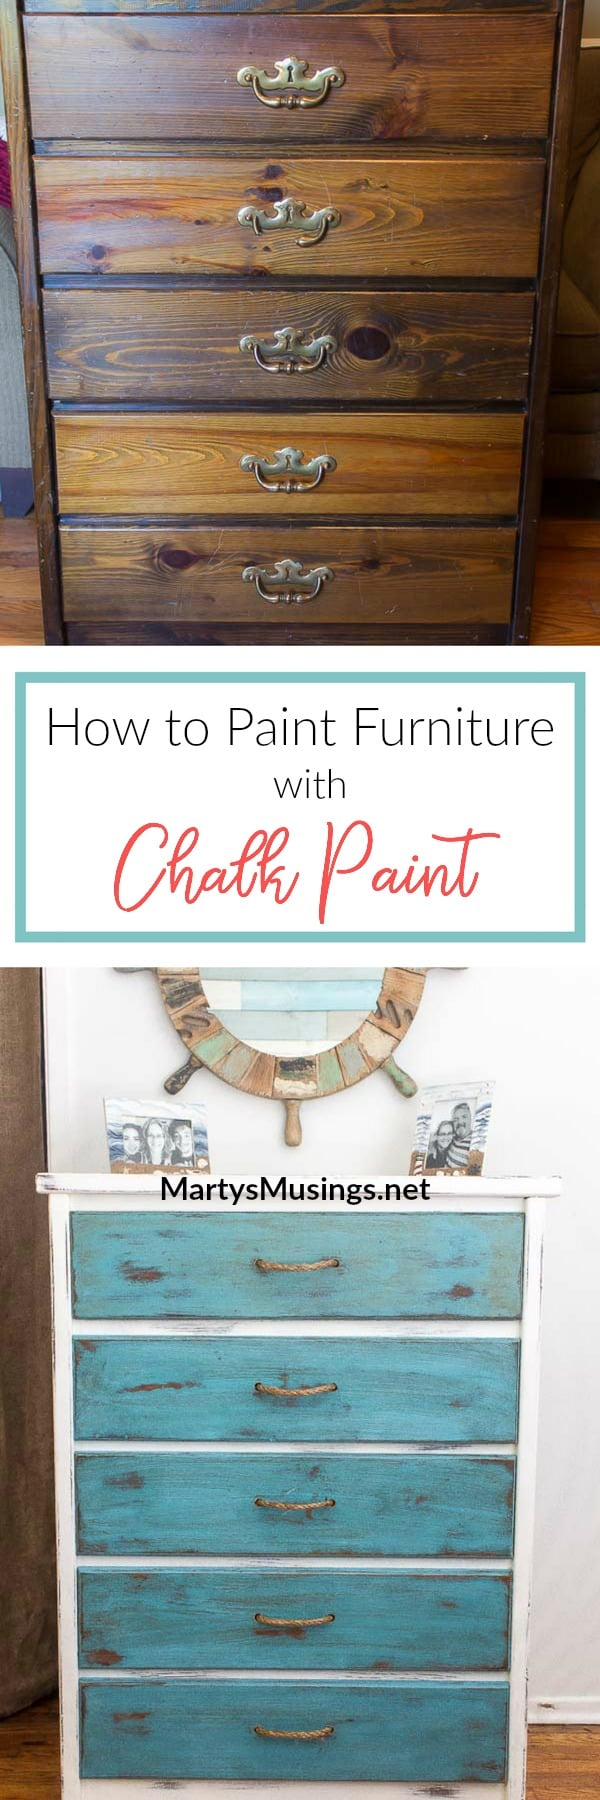 Donu0027t Throw Away That Old Furniture! Learn To Take An Ugly, Beaten